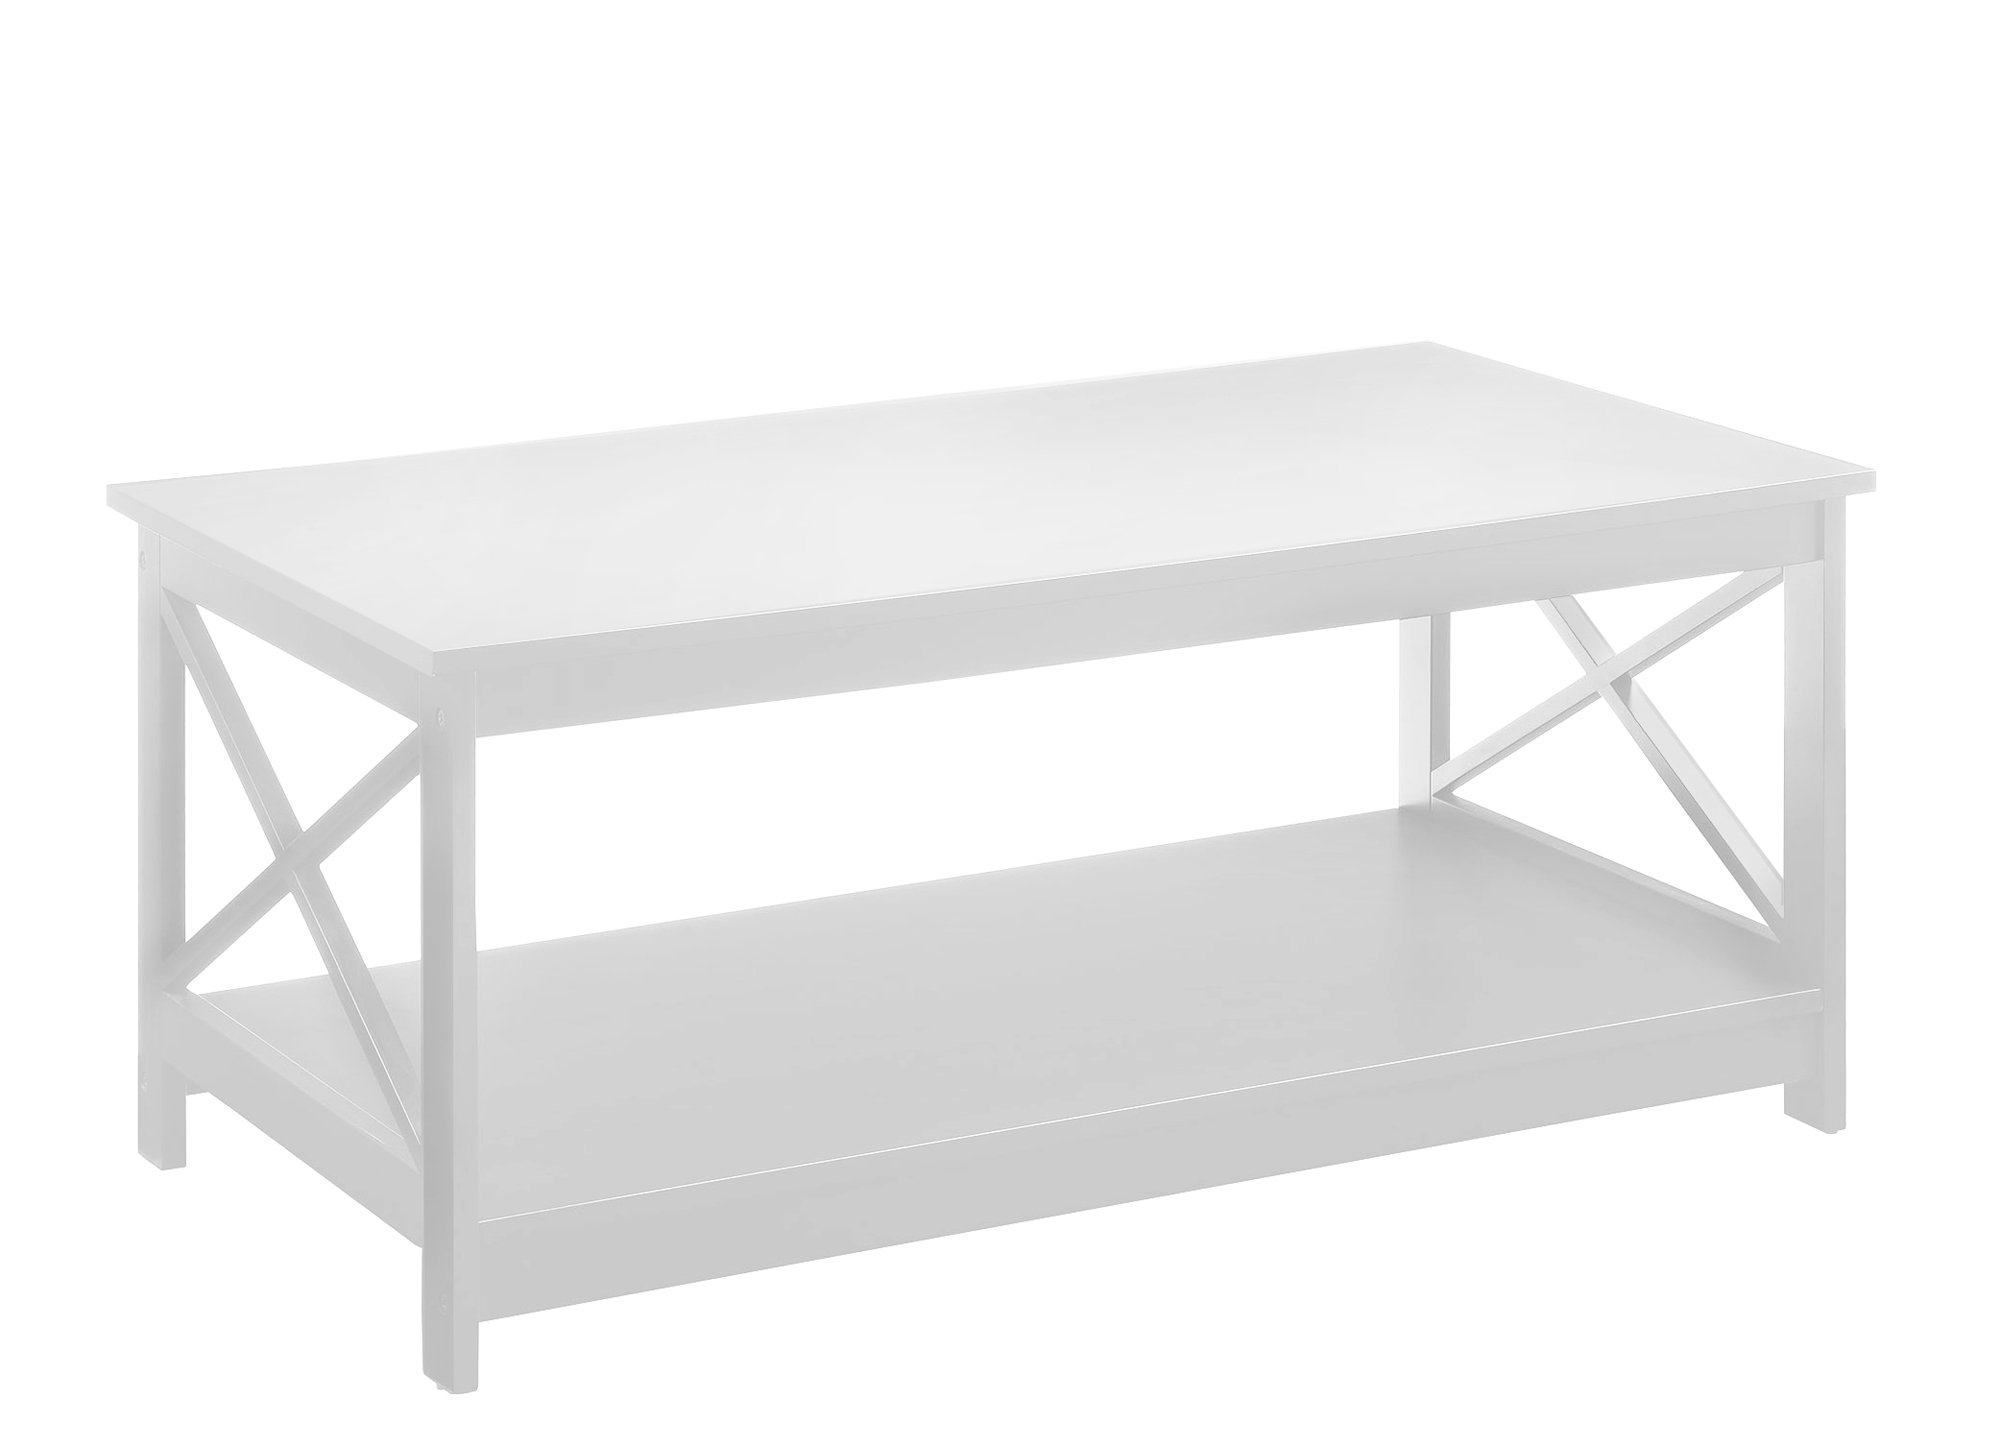 Convenience Concepts Oxford Coffee Table, White by Convenience Concepts